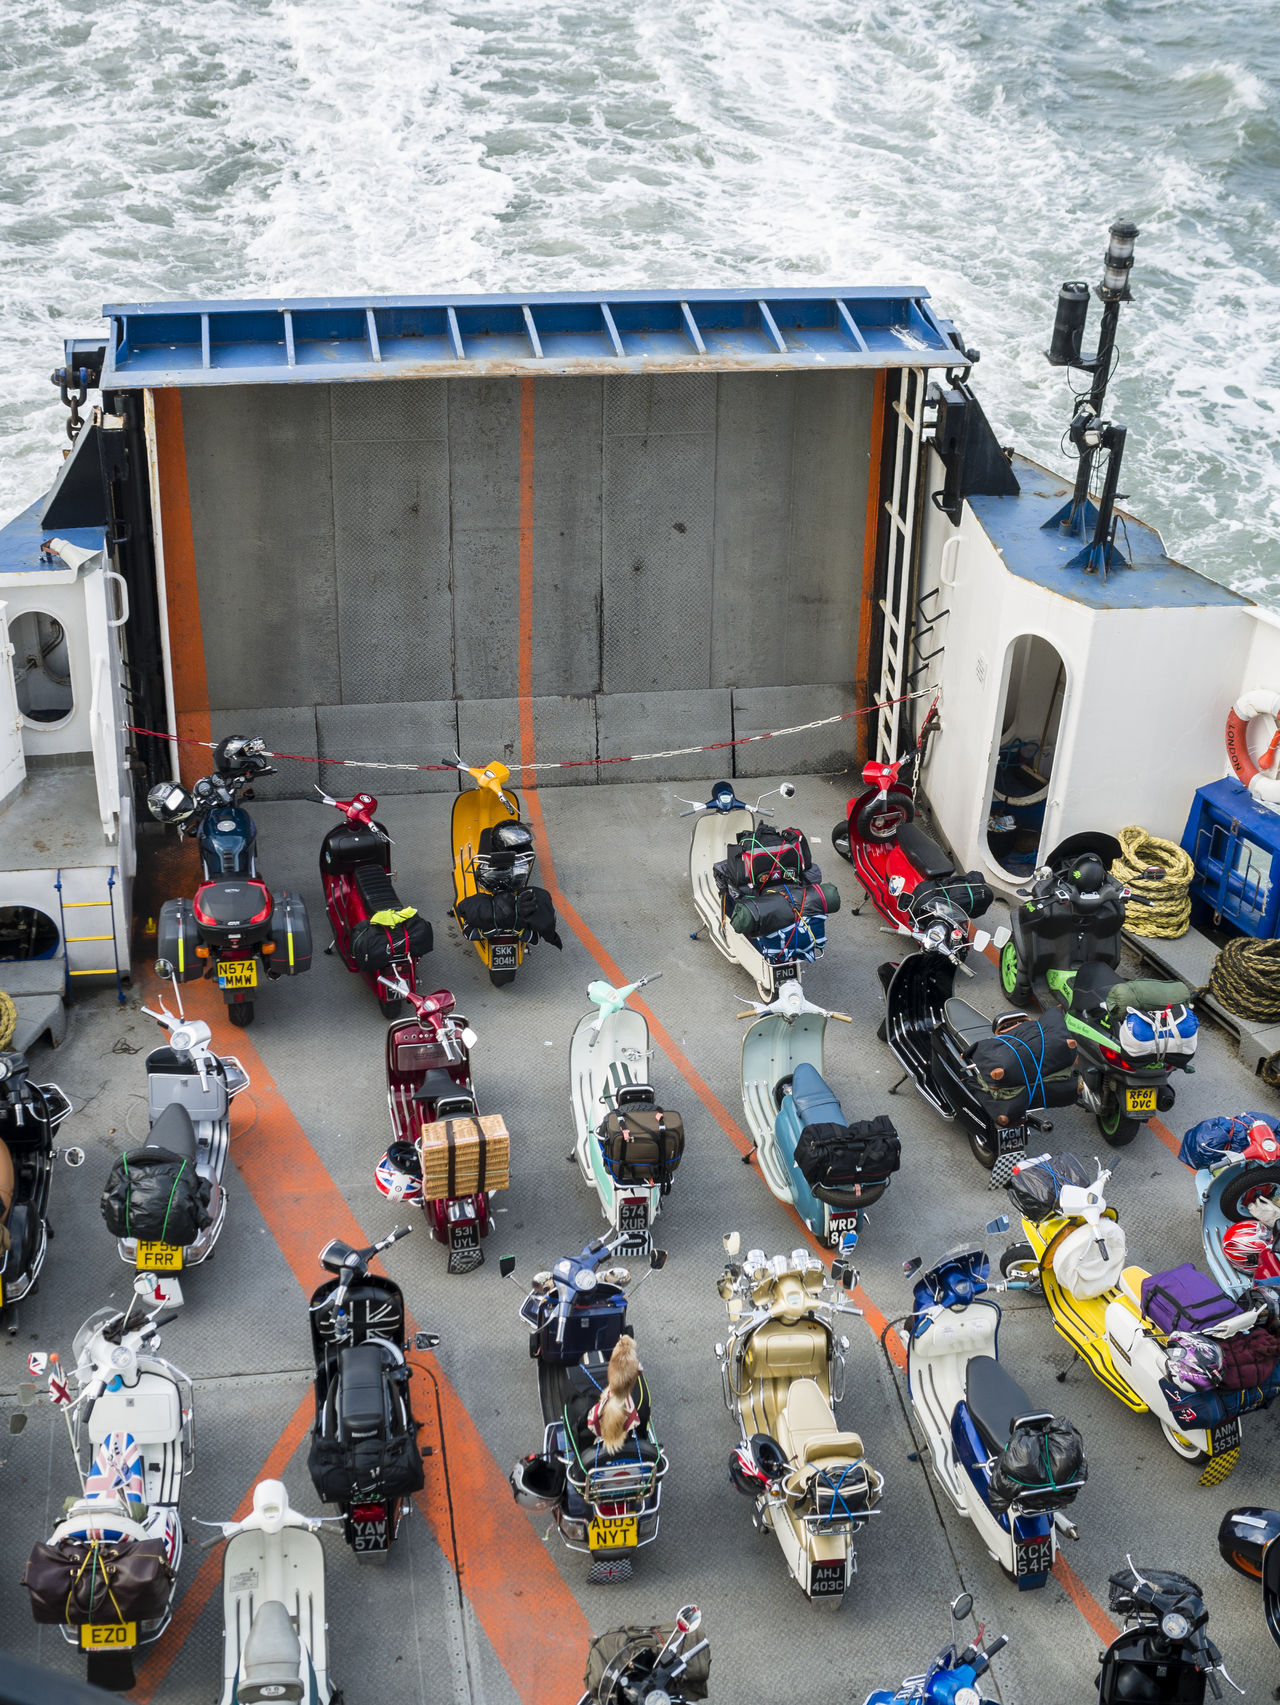 Scooters Lined up Onboard a Ferry, Portsmouth, Britain 1960's 60's Classic Crossing Custom Deck Ferry Ferryboat Italian Lambretta Lined Moped Motorbikes Parked Rally Retro Revival Scootering Scooters Sixties Transport Transportation Vehicle Vespa Vintage